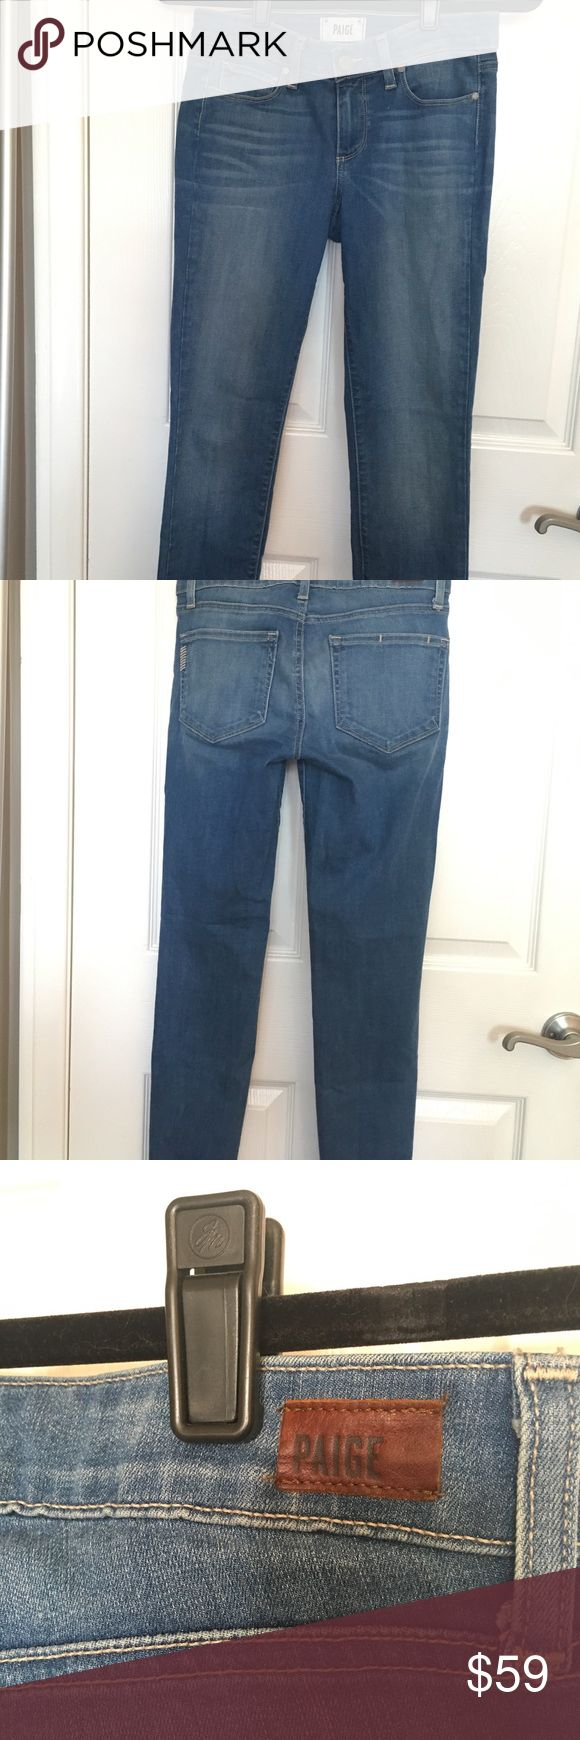 PAIGE Premium Denim Jeans Kylie Crop Skinny Paige Premium Denim Kylie Crop Skinny Distressed Wash. Mid rise. Looks super cute cuffed or straight. Good condition. Paige Jeans Jeans Ankle & Cropped